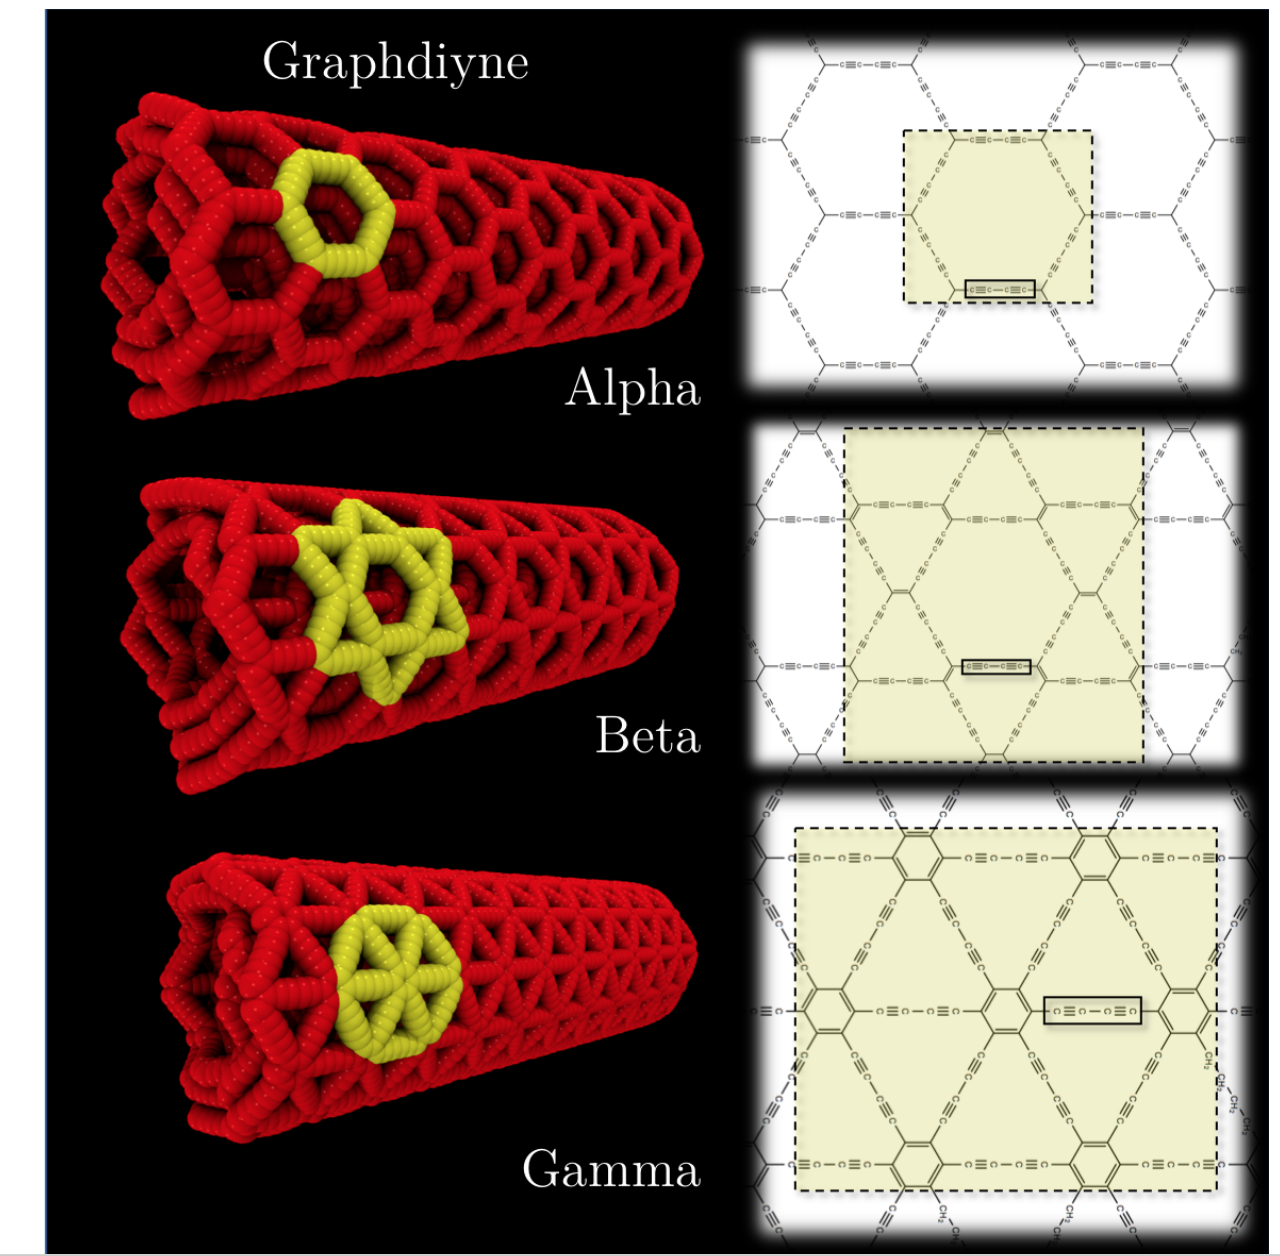 Structural and Thermal Stability of Graphyne and Graphdiyne Nanoscroll Structures